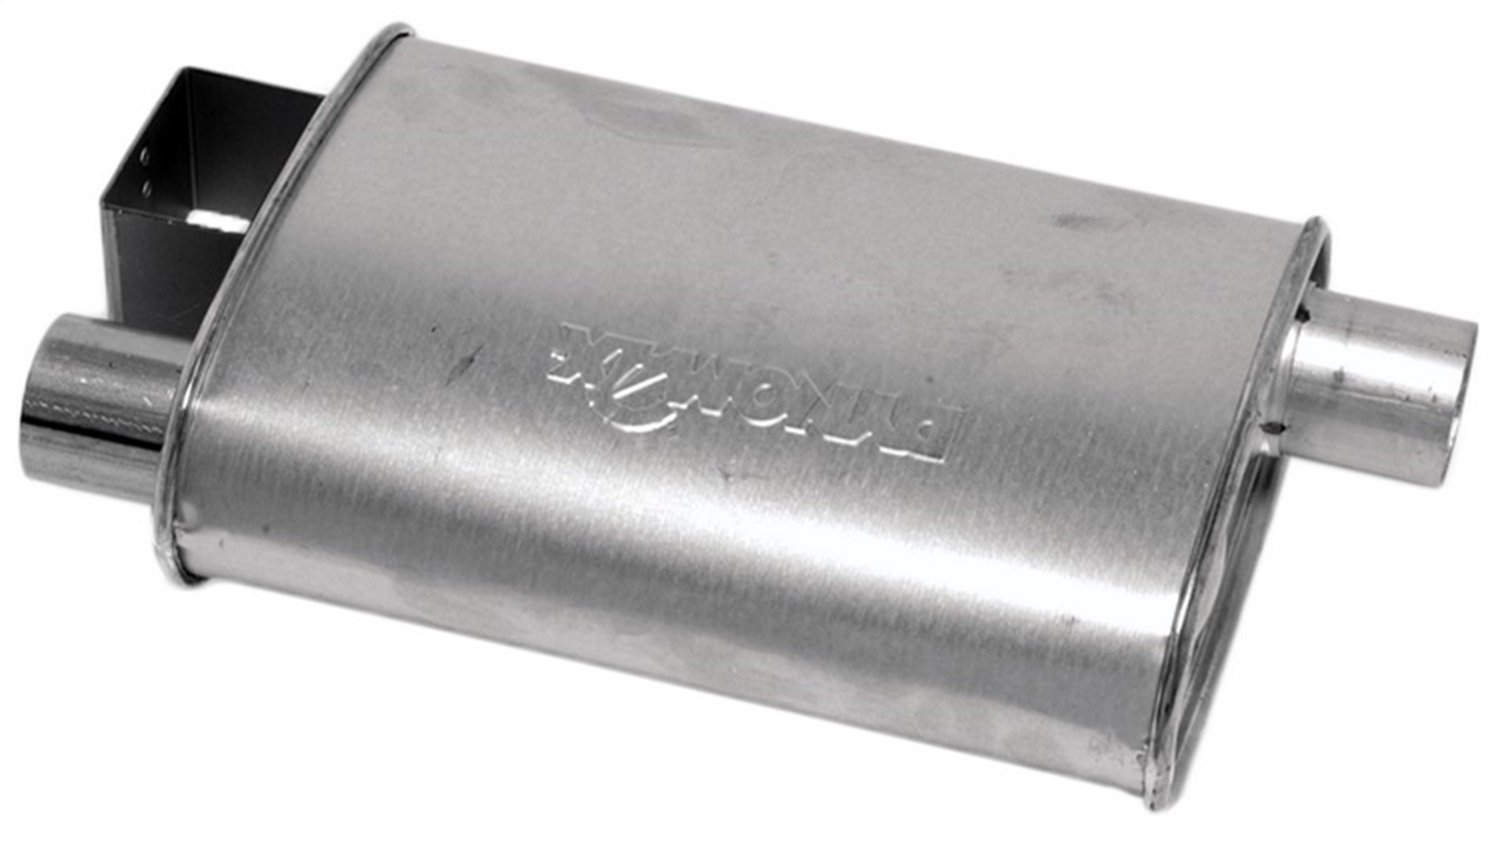 Dynomax 17735 Super Turbo Muffler